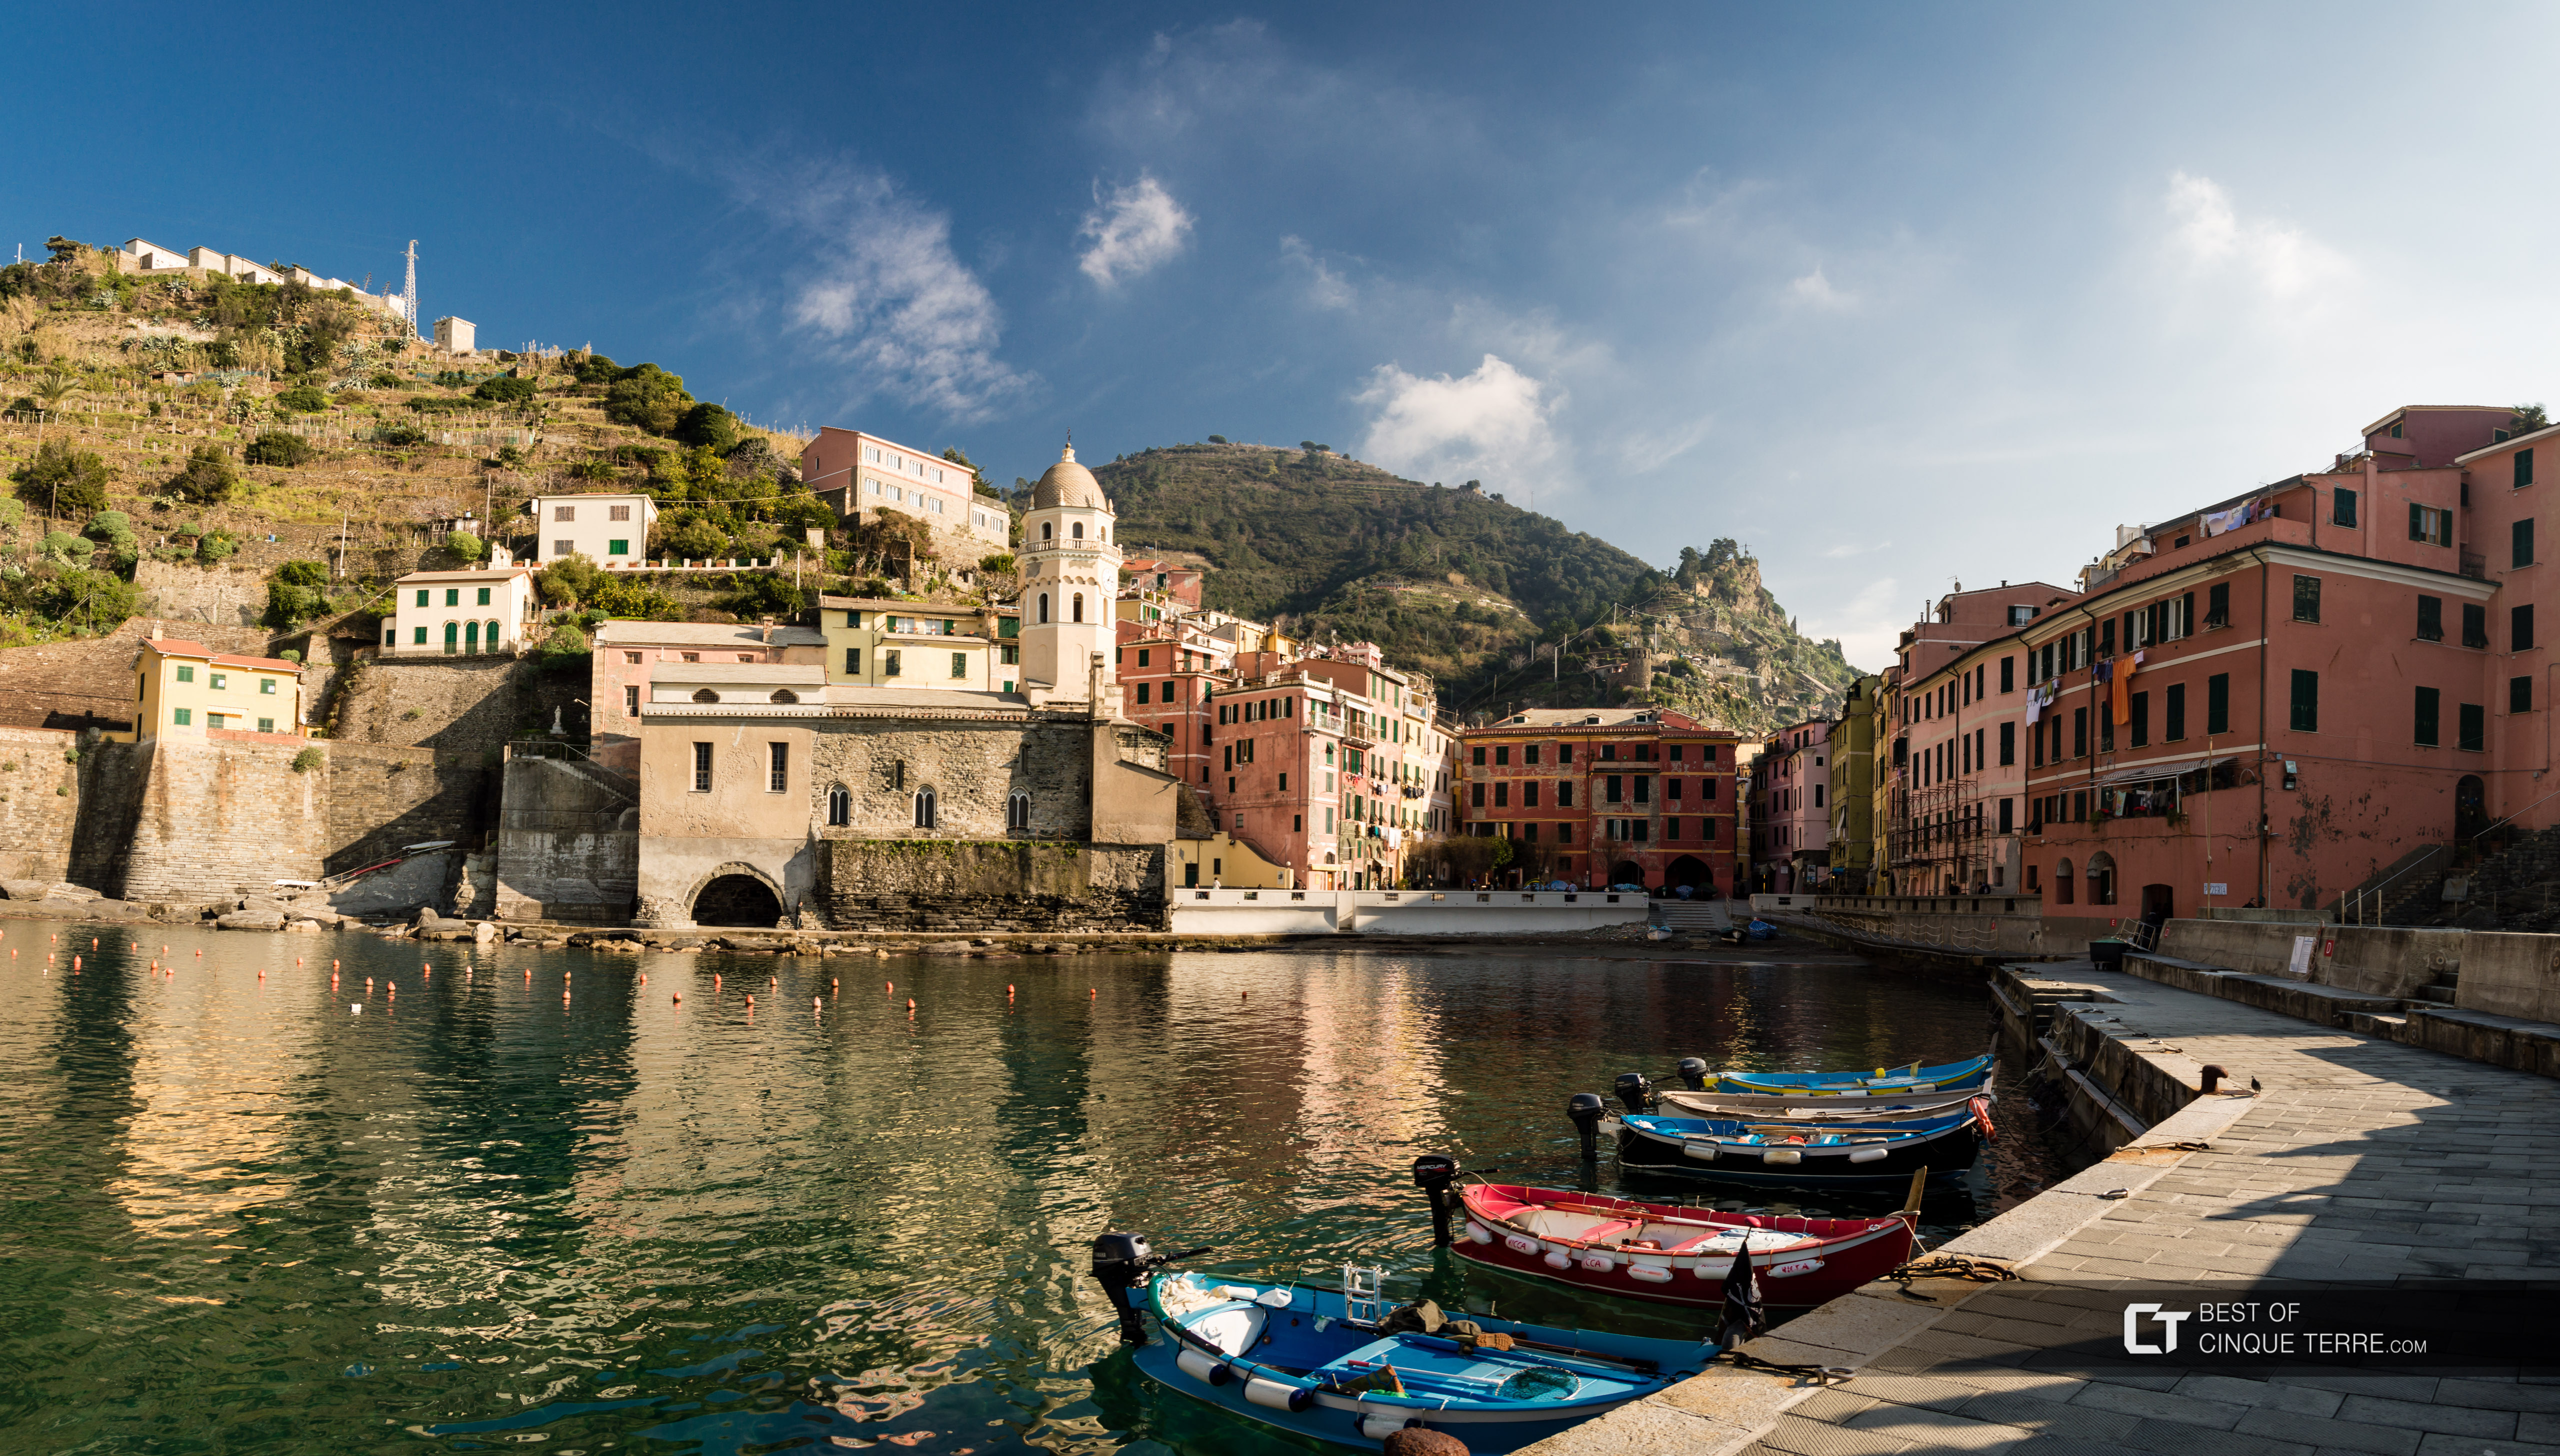 Bay of the village during winter, Vernazza, Cinque Terre, Italy